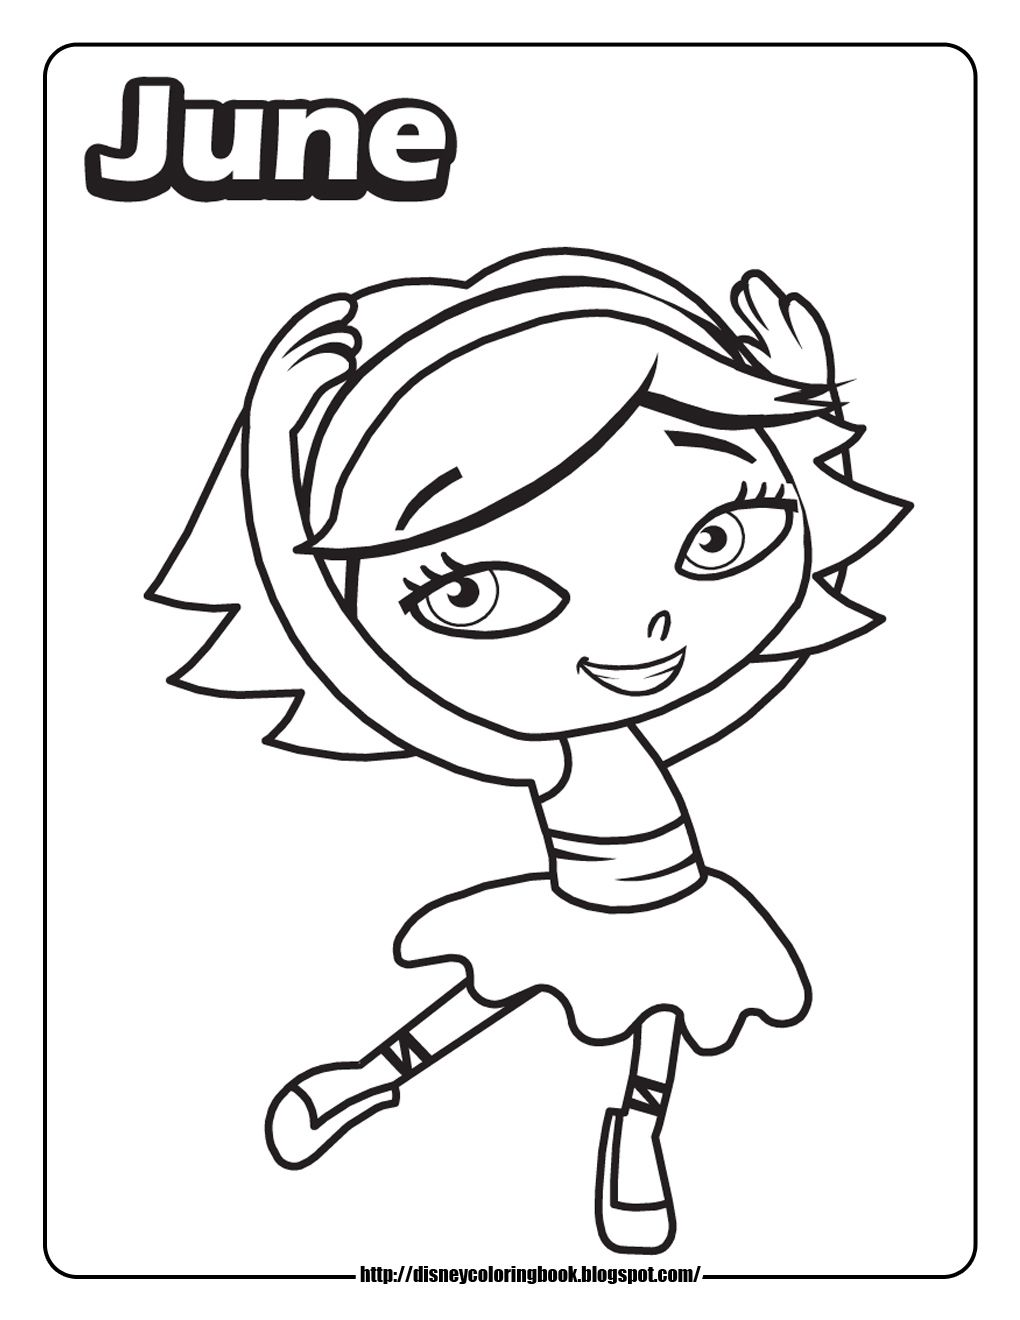 Free disney junior colouring pages - Top 10 Free Printable Little Einsteins Coloring Pages Online